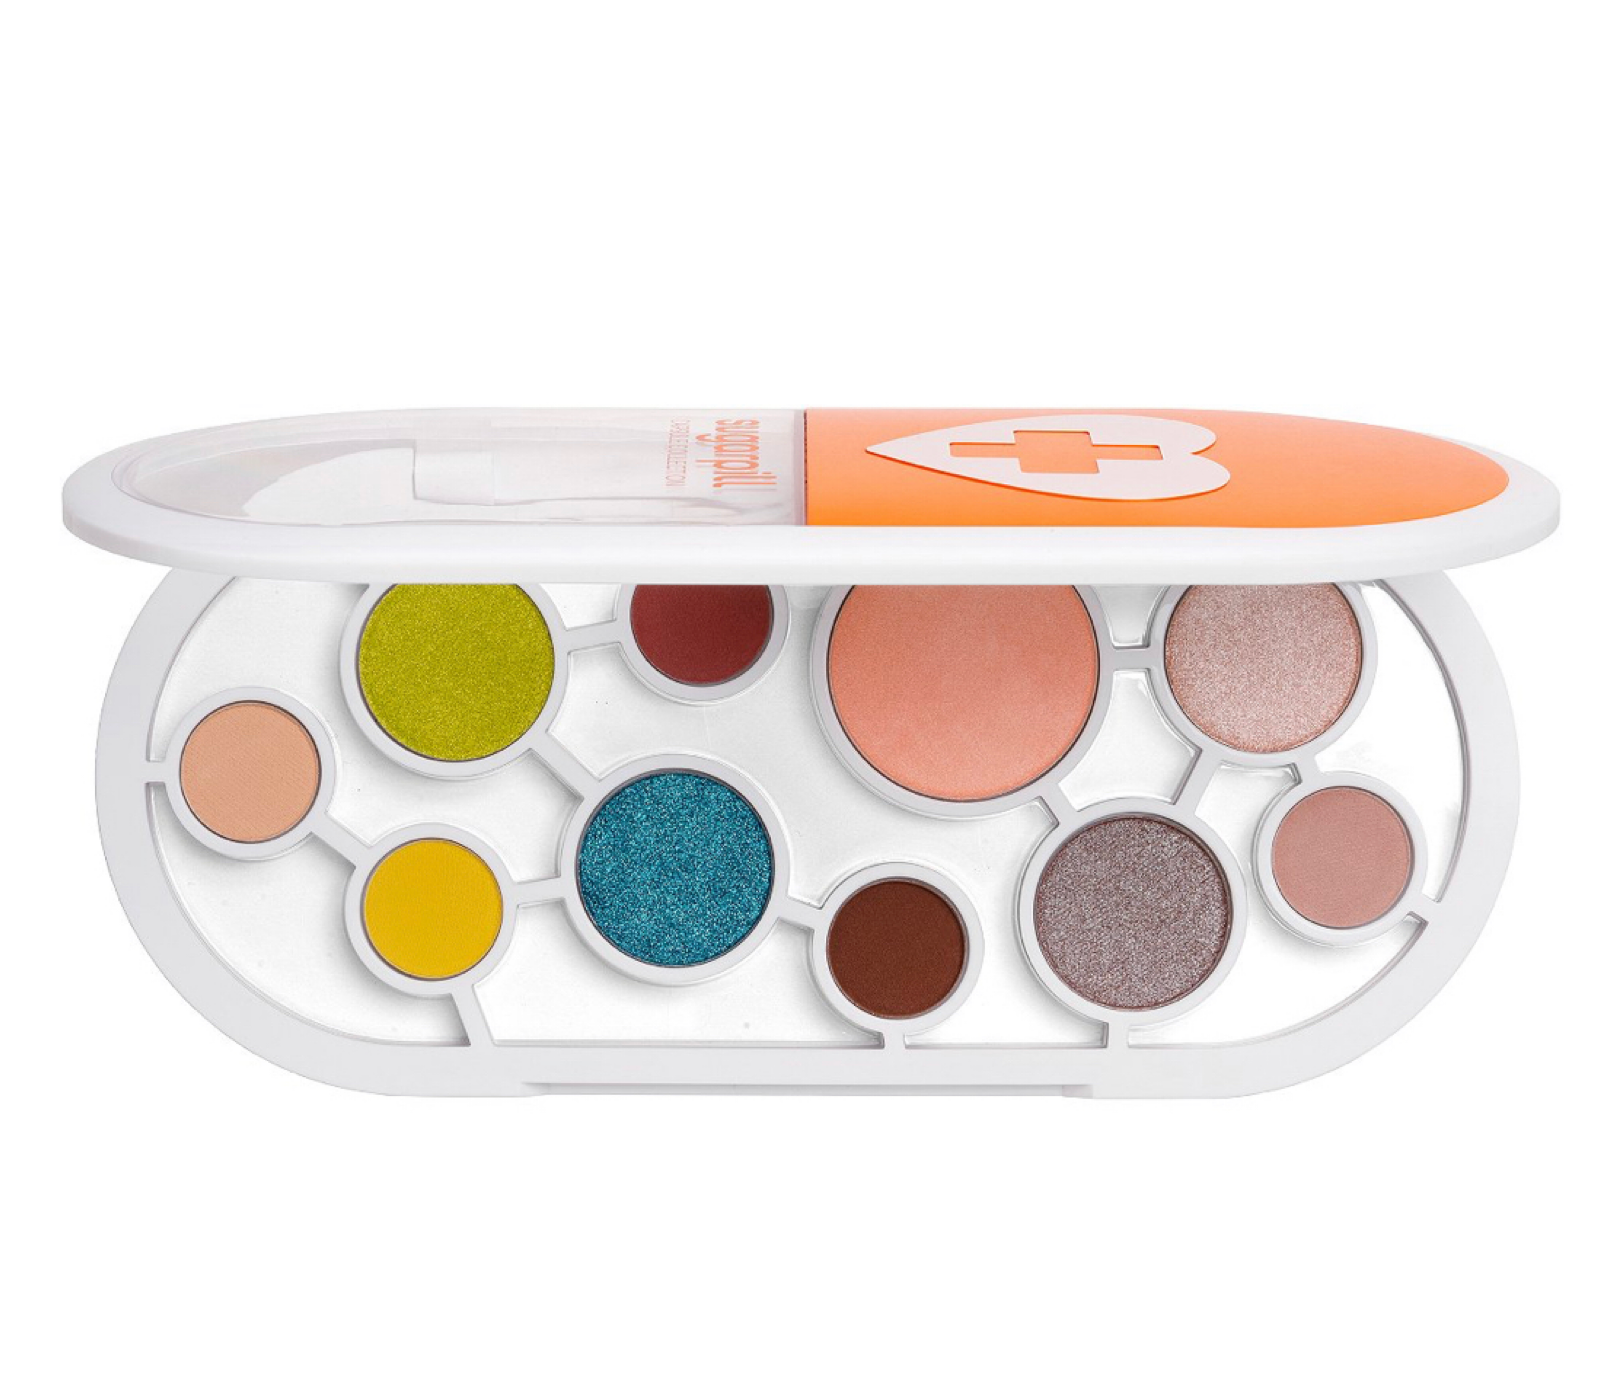 Sugarpill C2 Capsule Collection Eyeshadow Palette